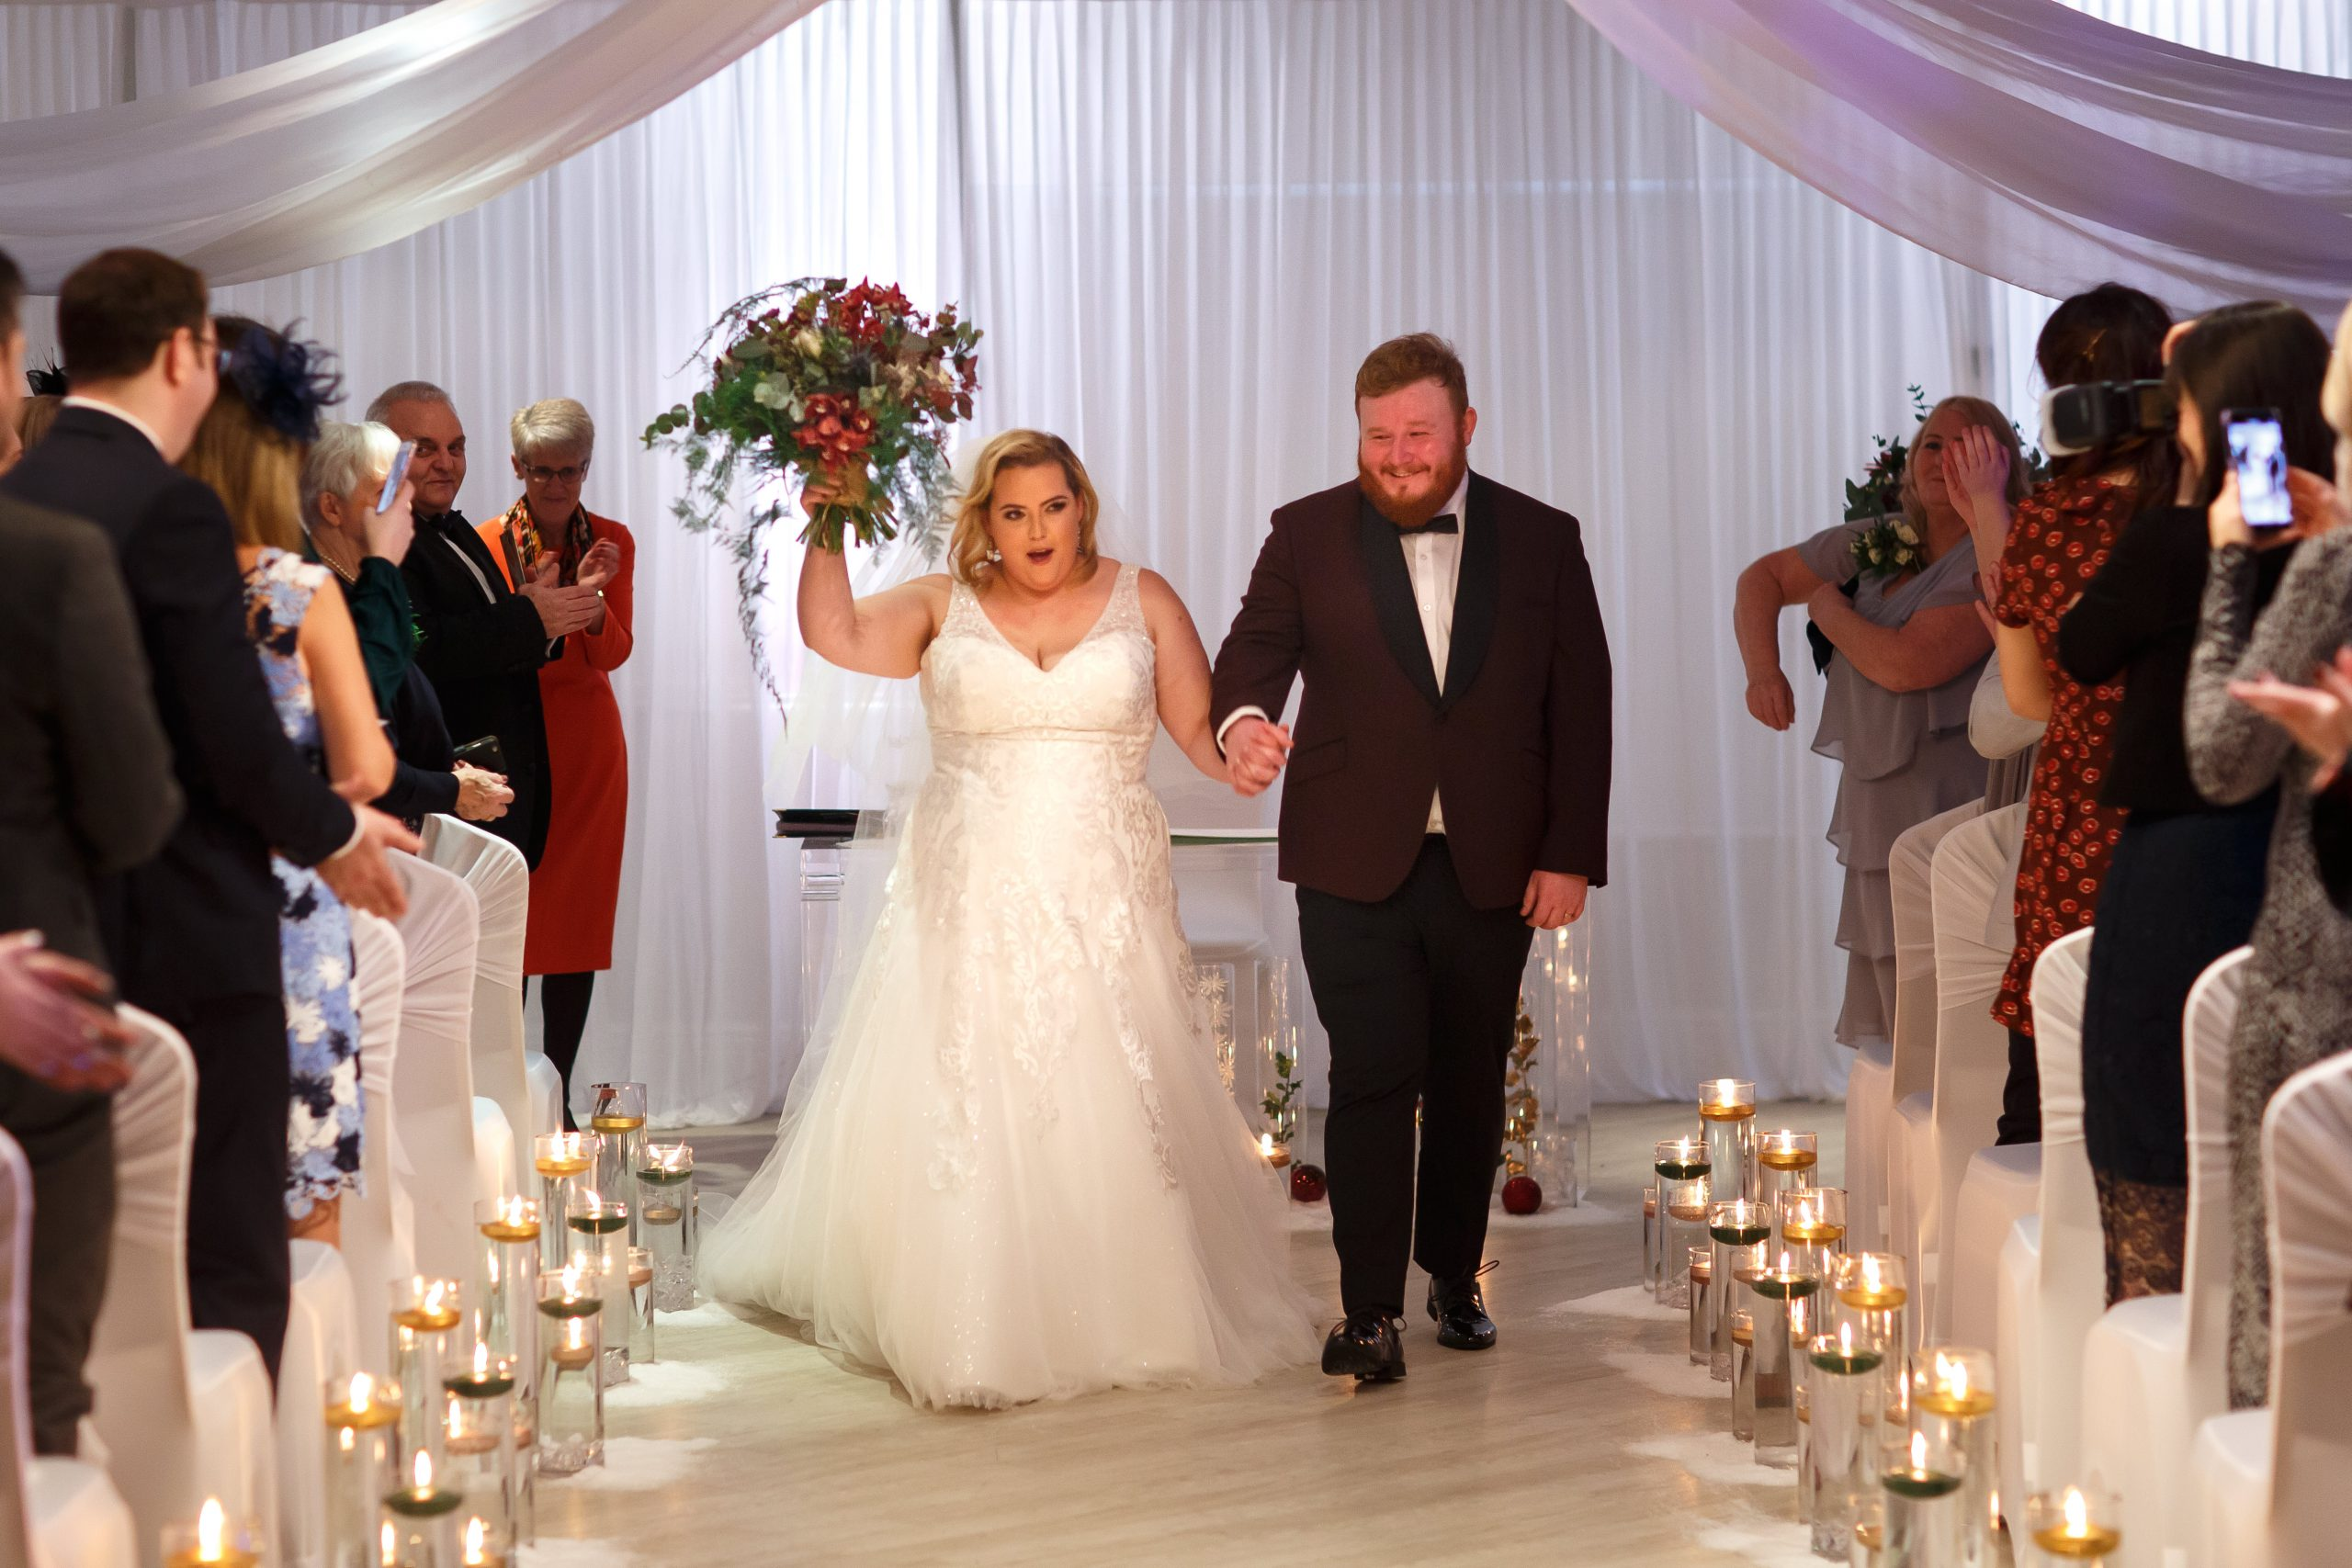 Bride waving wedding flowers in the air as she walks down the candle lit aisle with her new husband | Foxfields Country House Wedding Photography